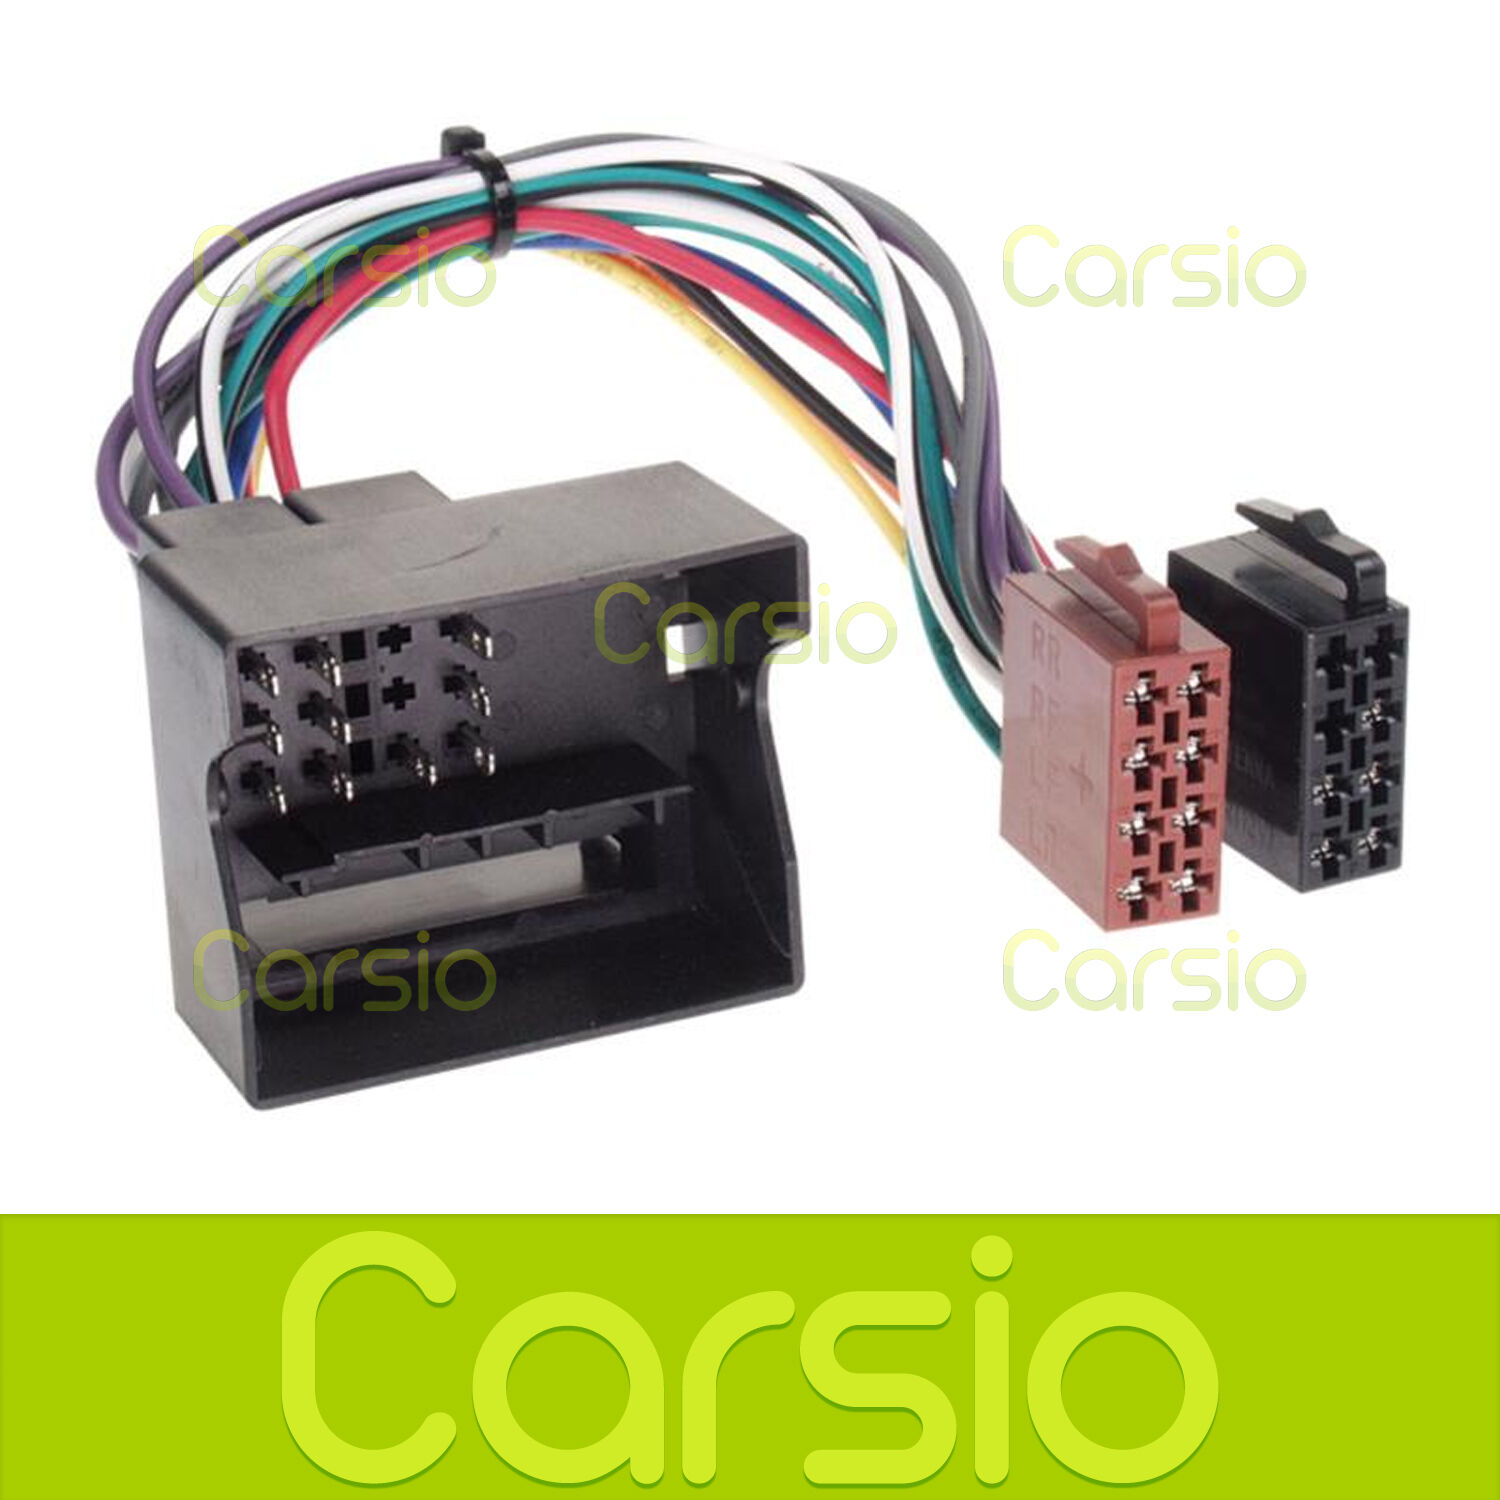 Skoda Octavia Iso Lead Wiring Harness Connector Stereo Radio Adaptor 1 Of 1only 2 Available